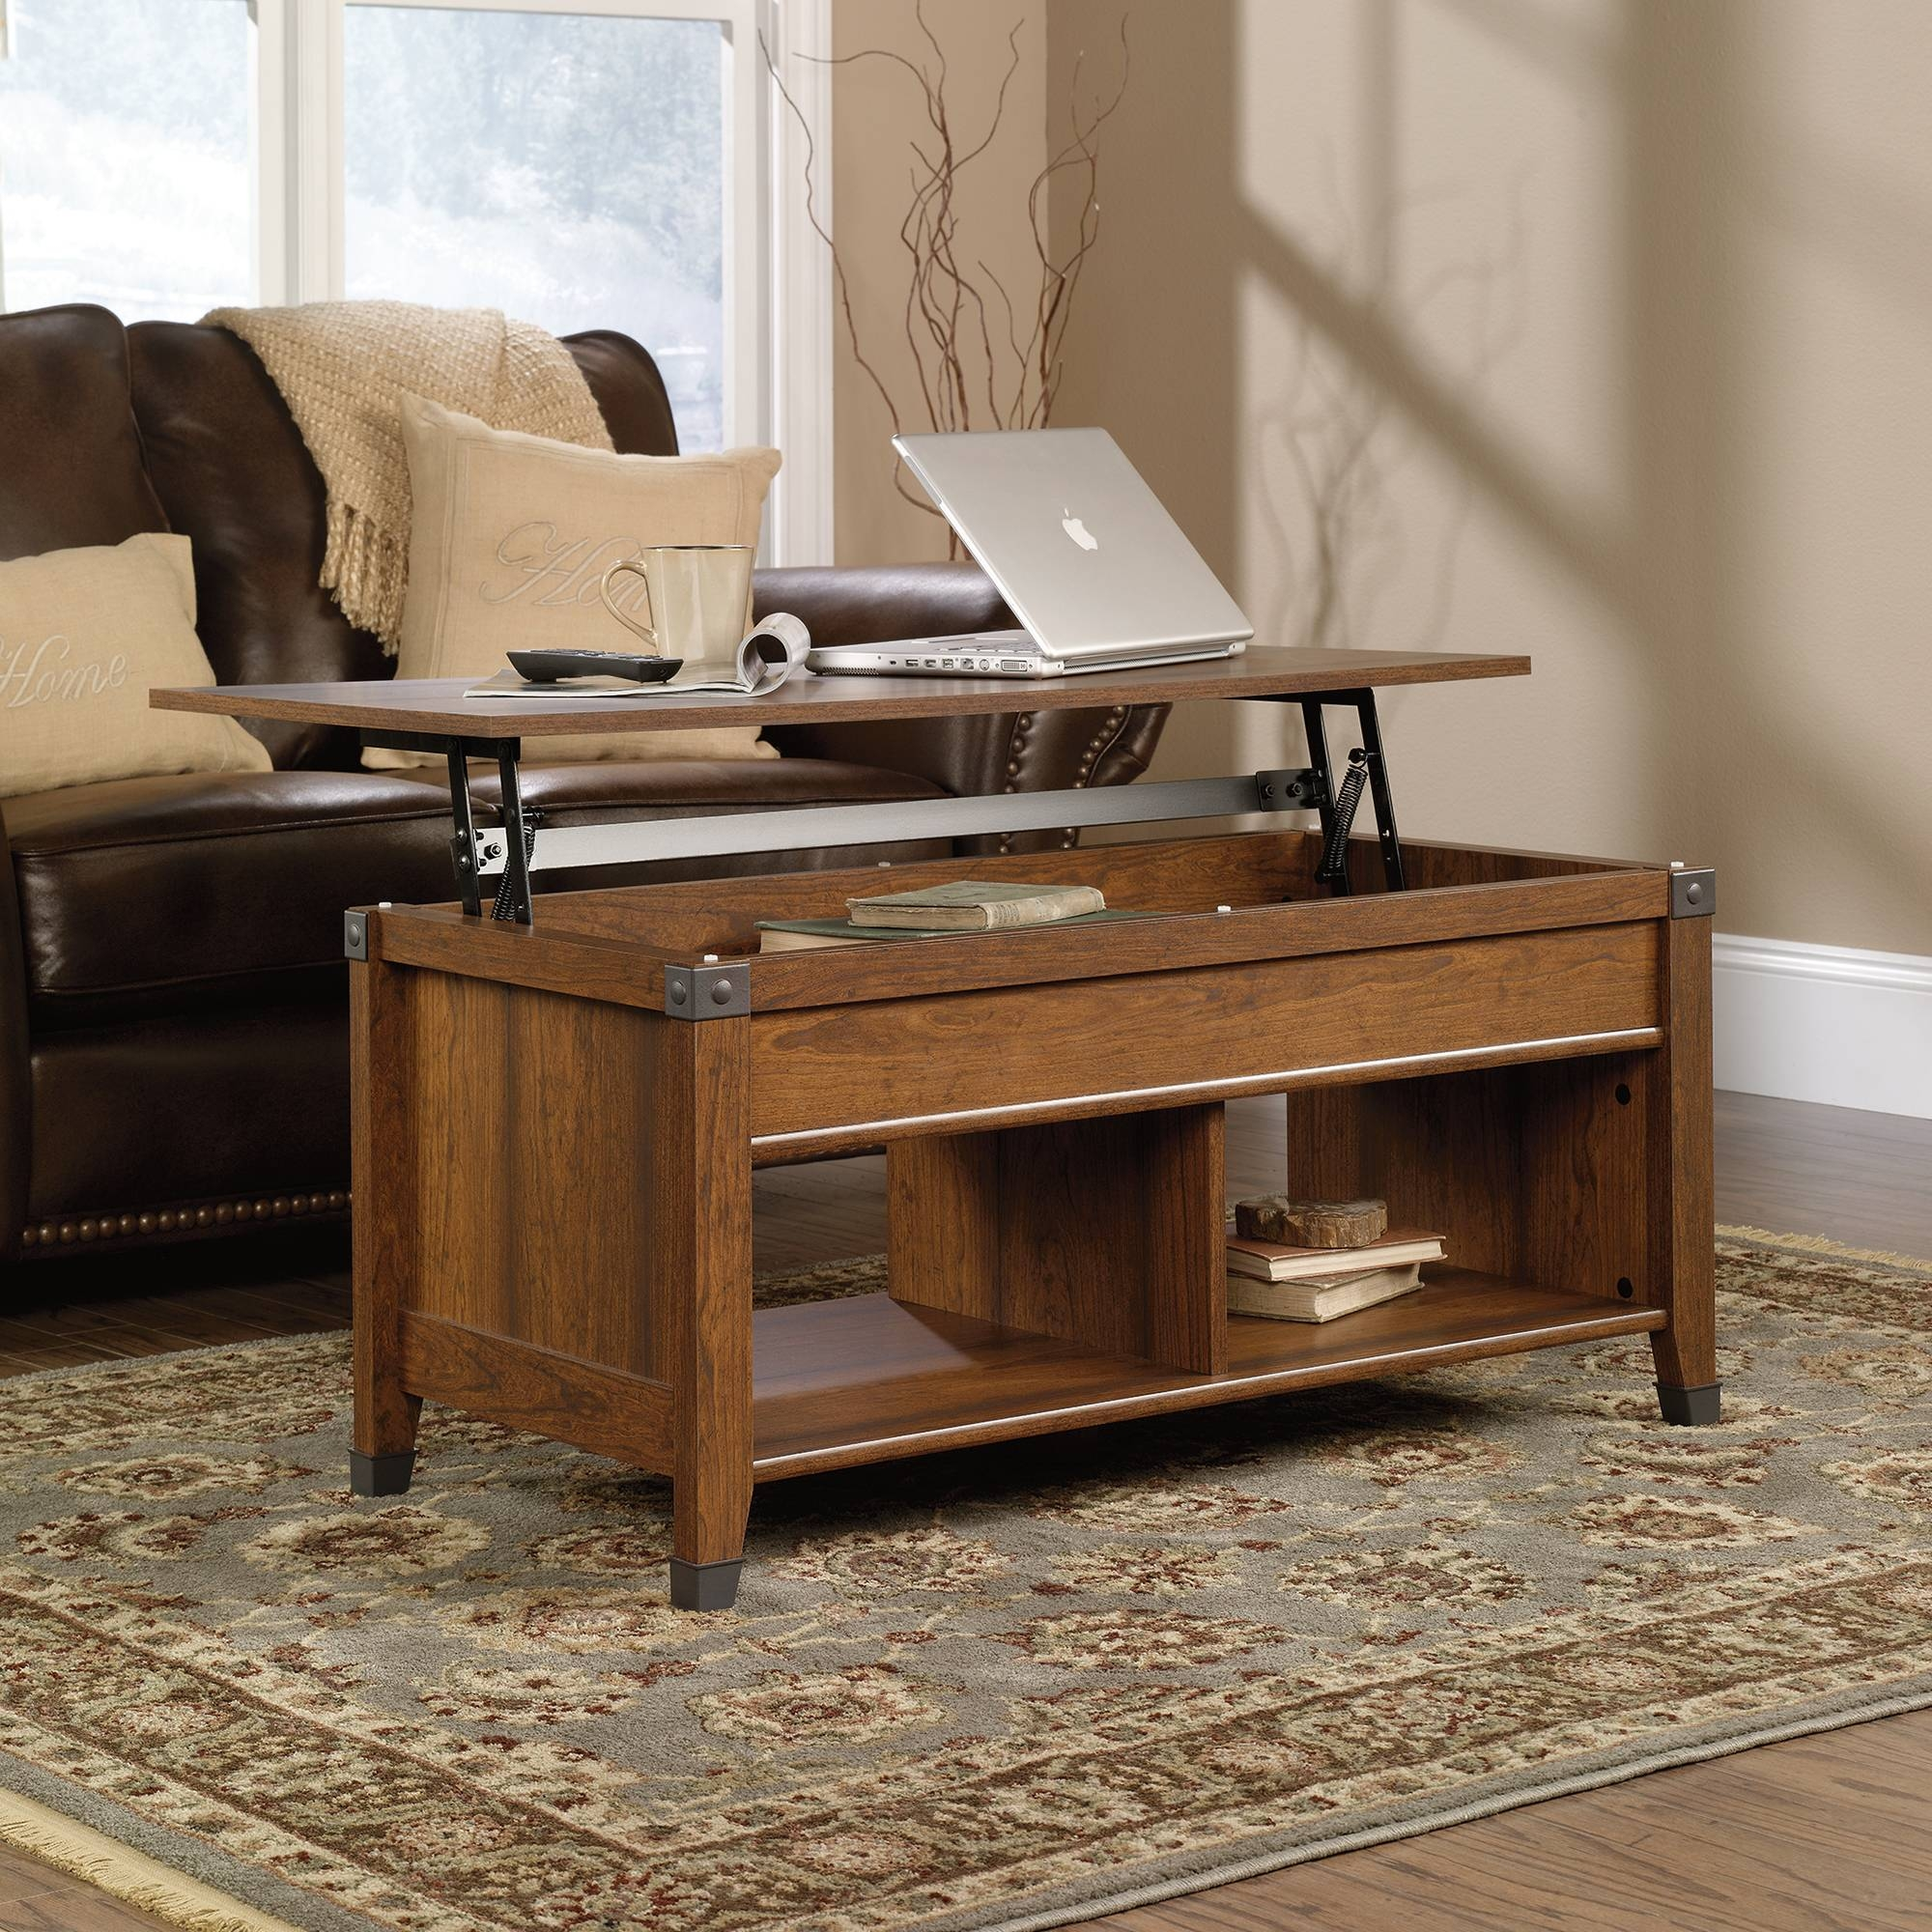 Carson Forge | Lift Top Coffee Table | 414444 | Sauder With Lift Top Coffee Tables With Storage (View 3 of 30)